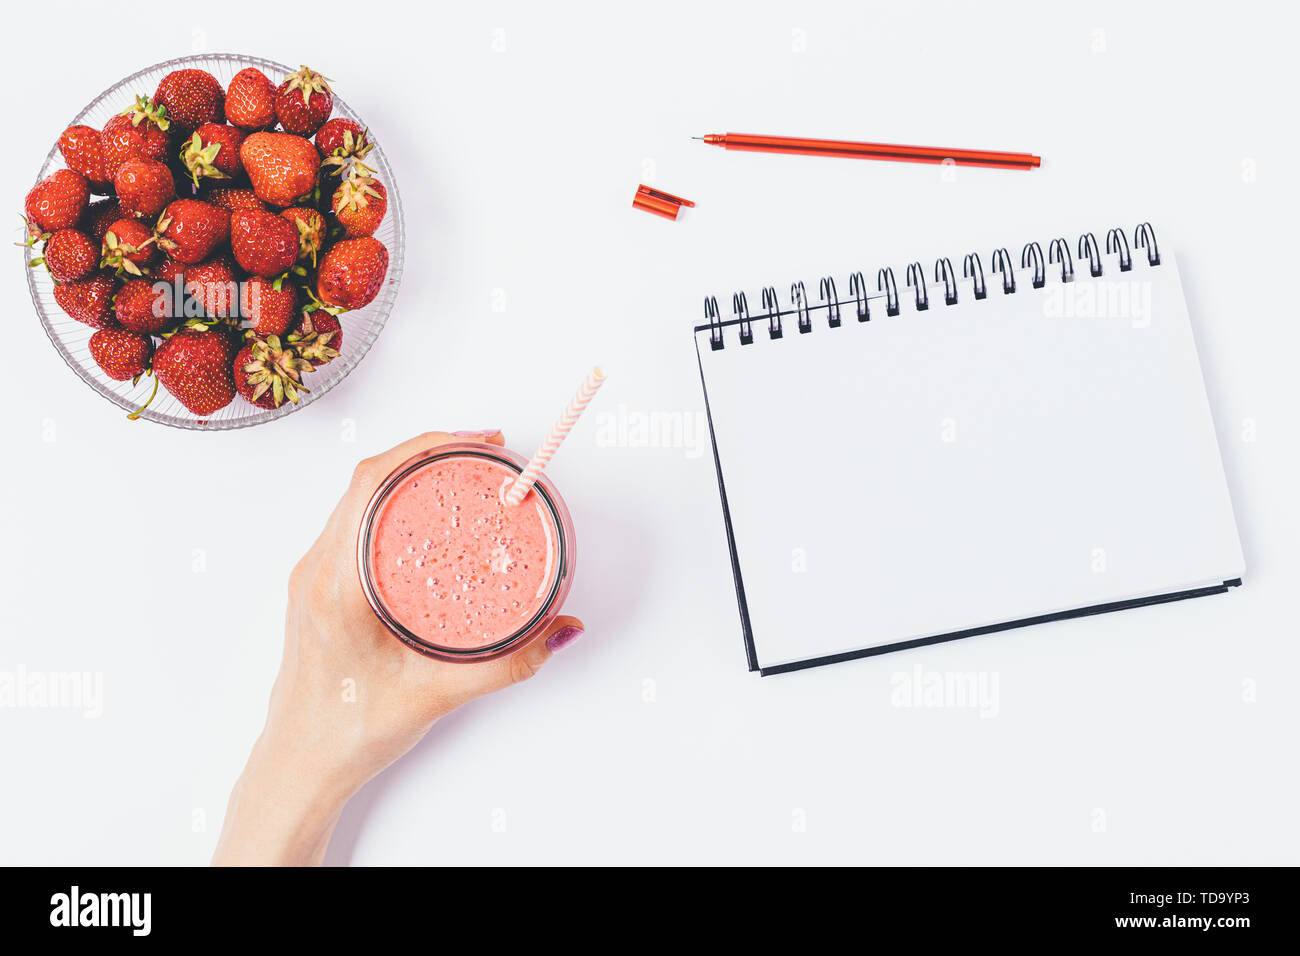 Female hand holding delicious strawberry smoothie next to bowl of fresh berries and an empty notepad on white desk, flat lay. - Stock Image